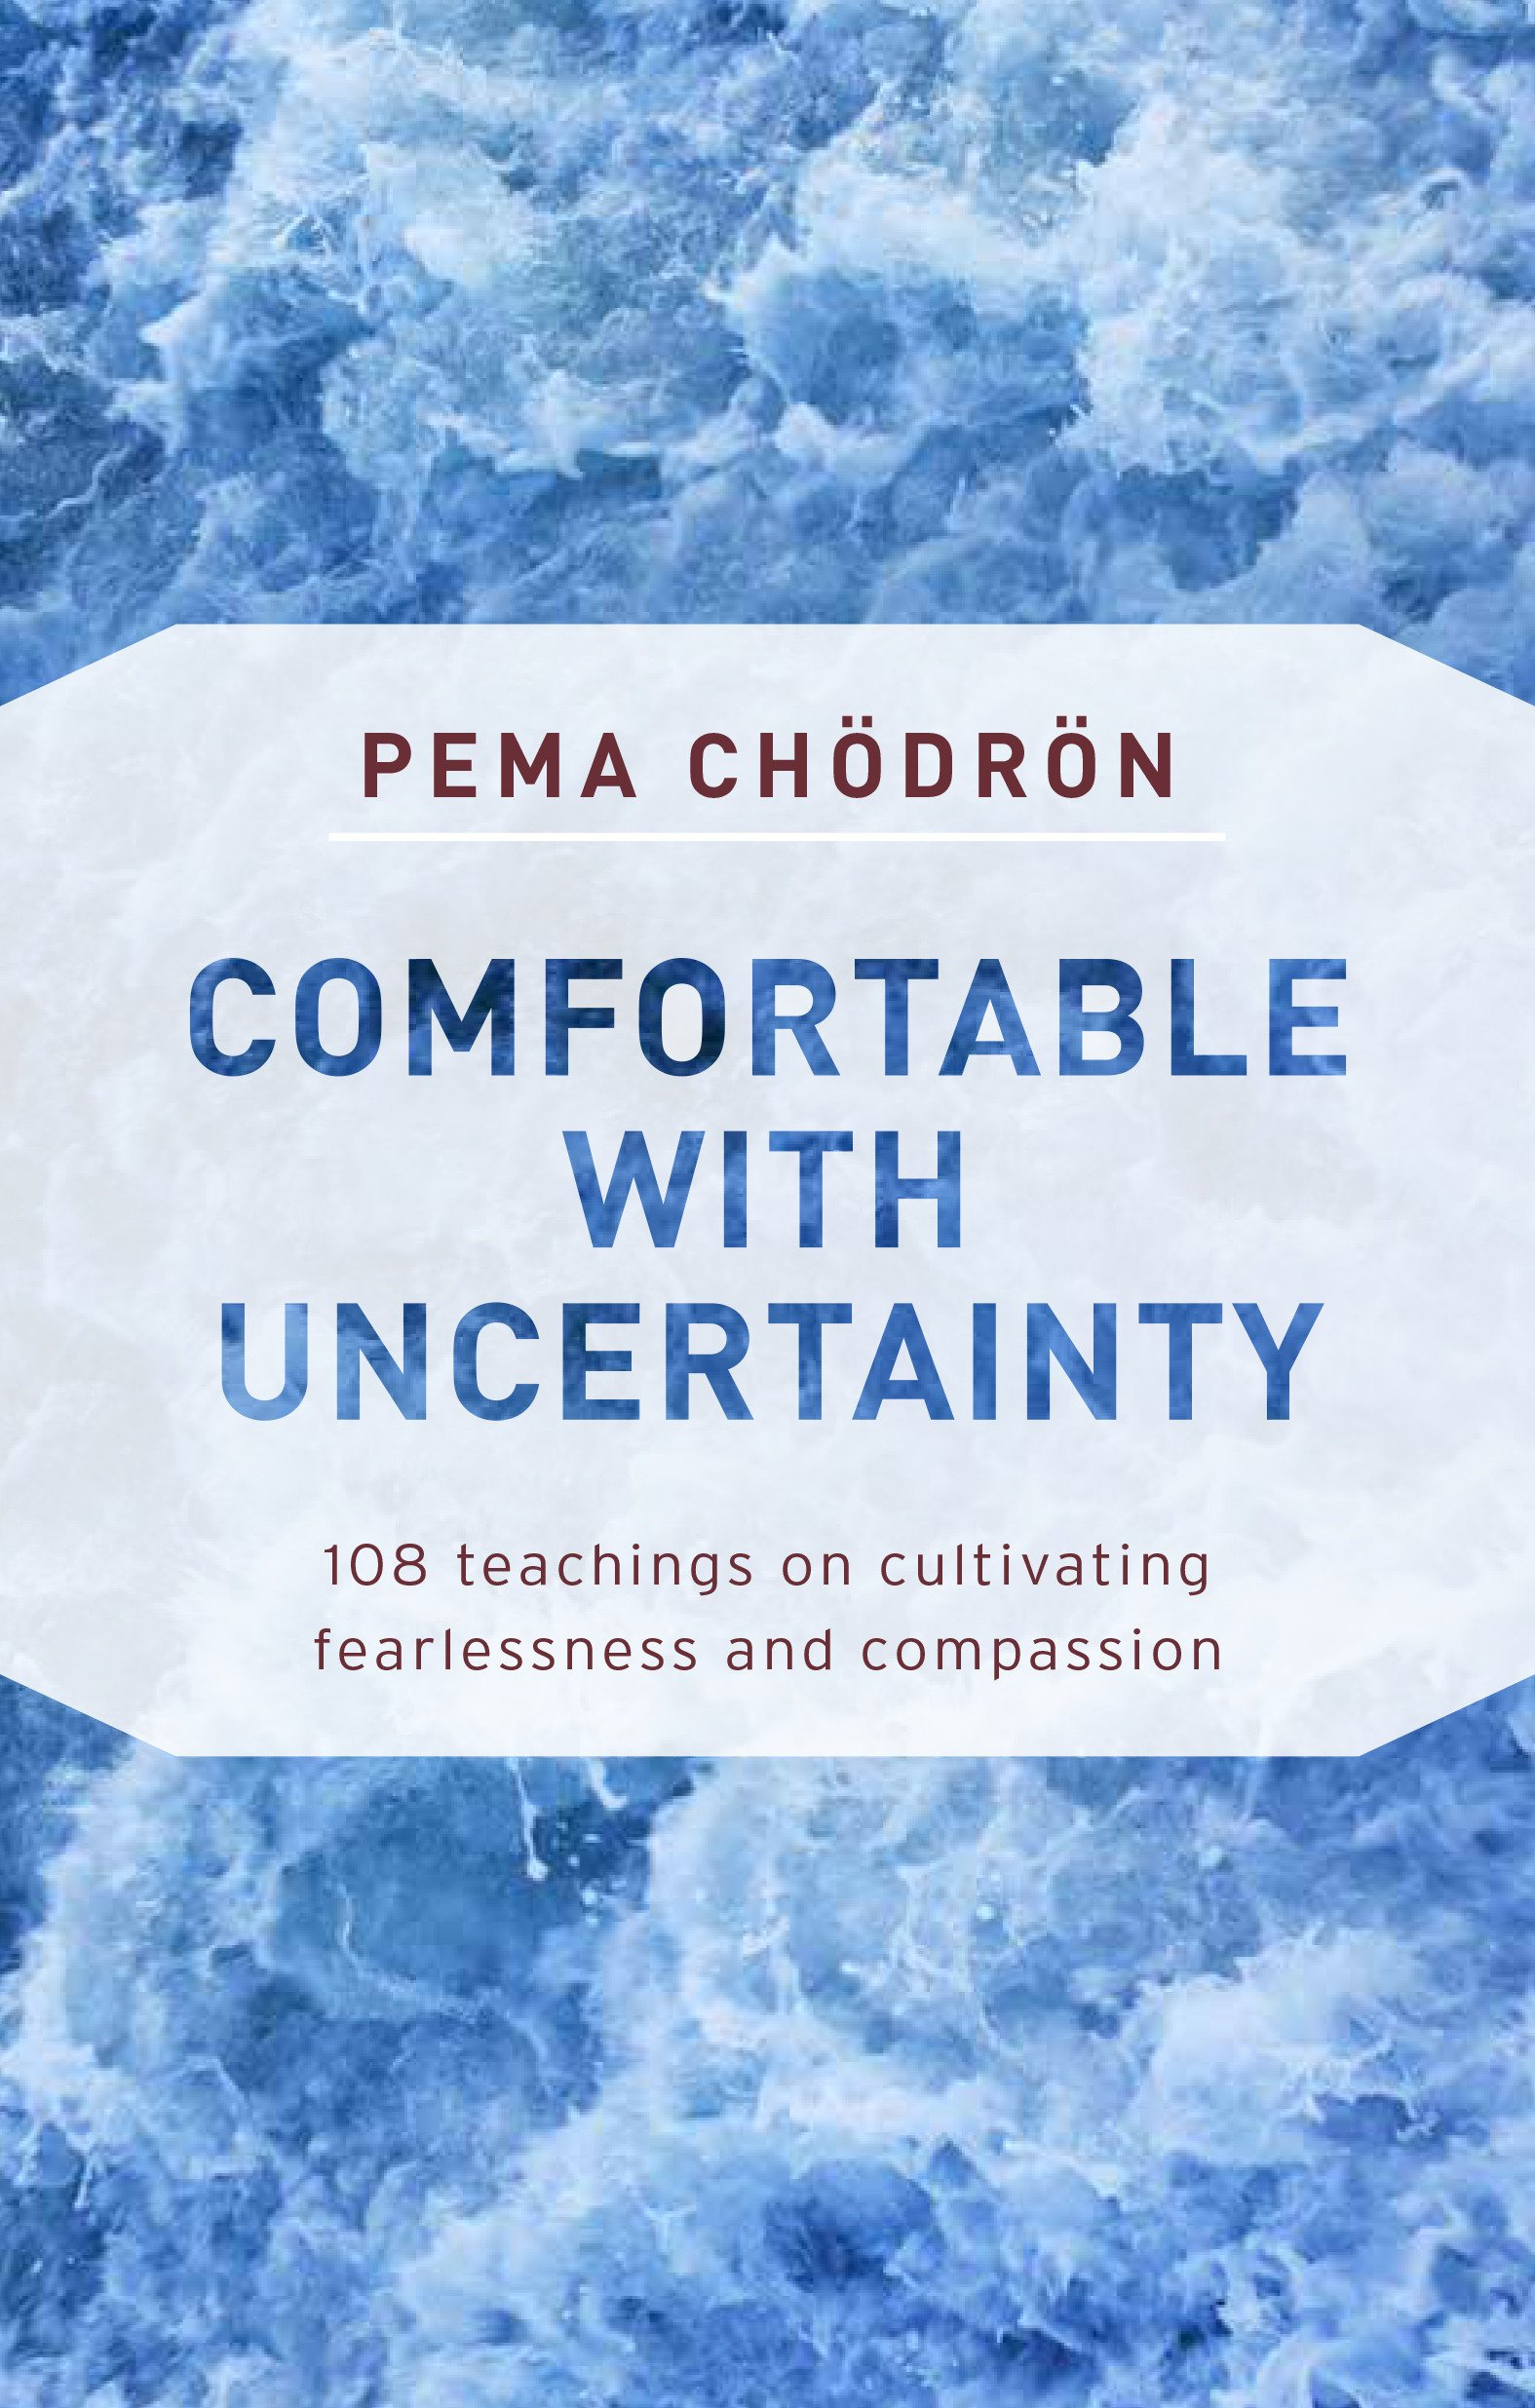 Comfortable Uncertainty Cultivating Fearlessness Compassion product image